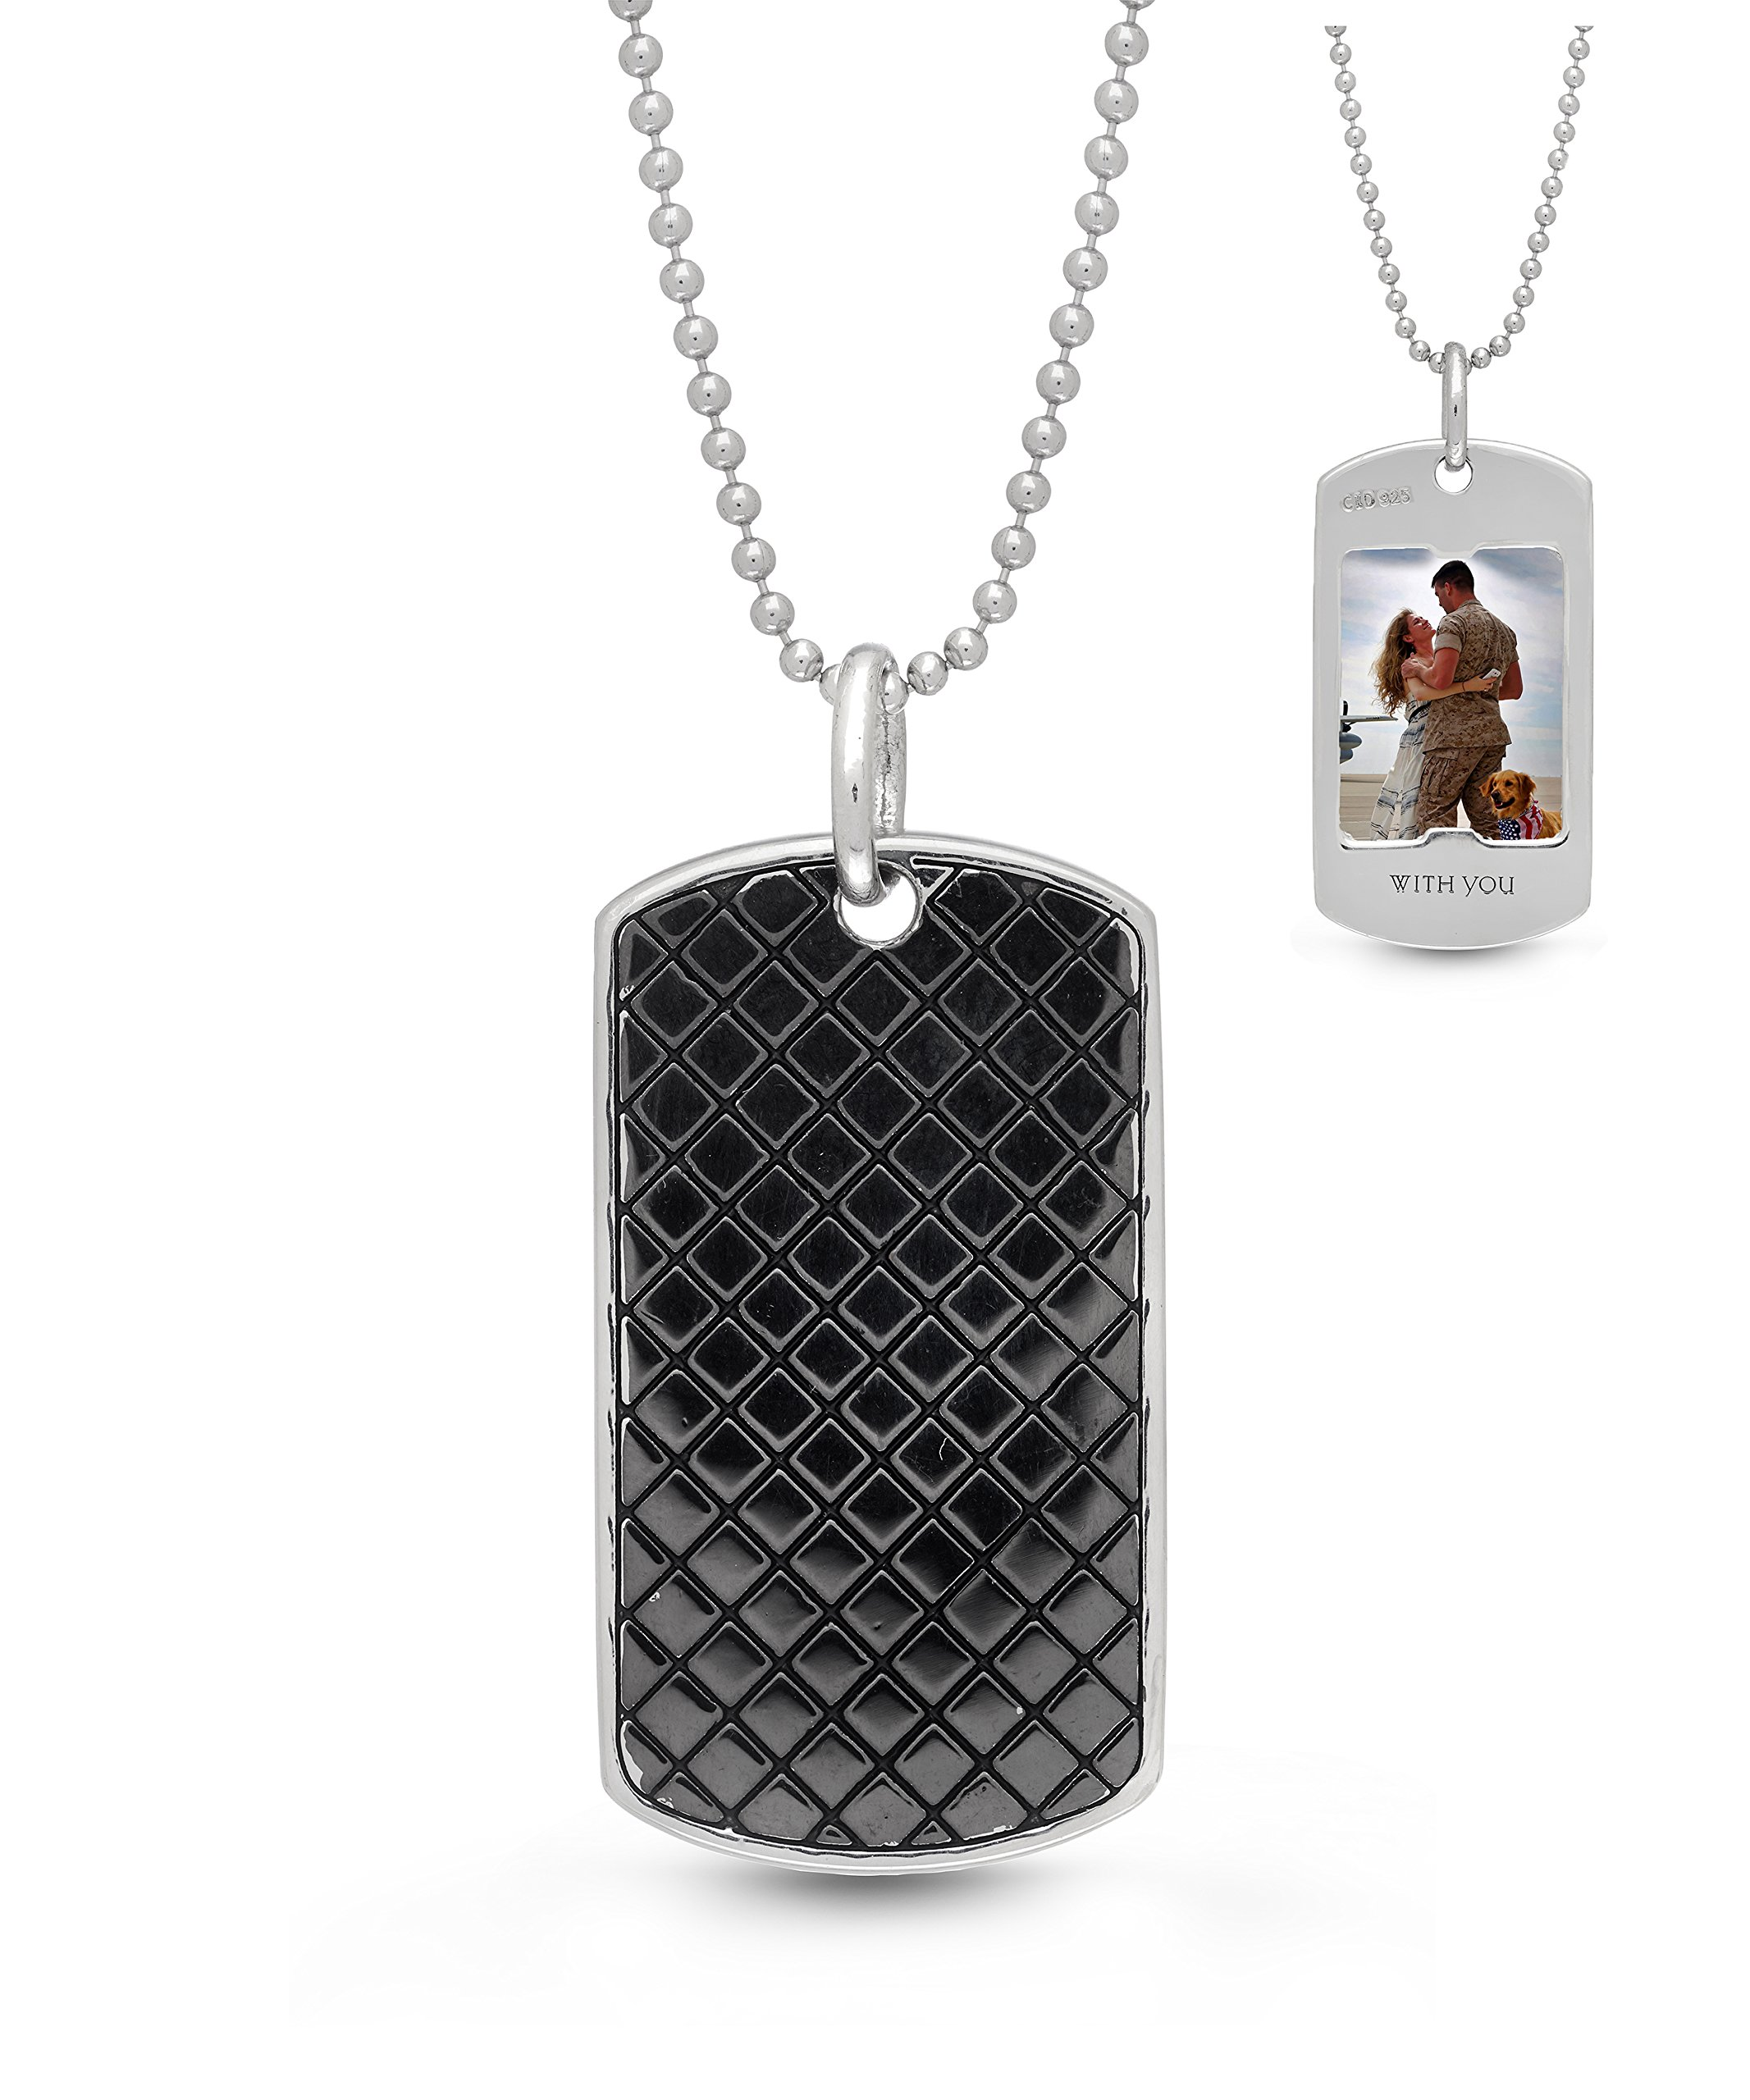 With You Lockets-Sterling Silver-Custom Photo Locket Necklace-Dog Tag-That Holds Pictures For Men-The Walter